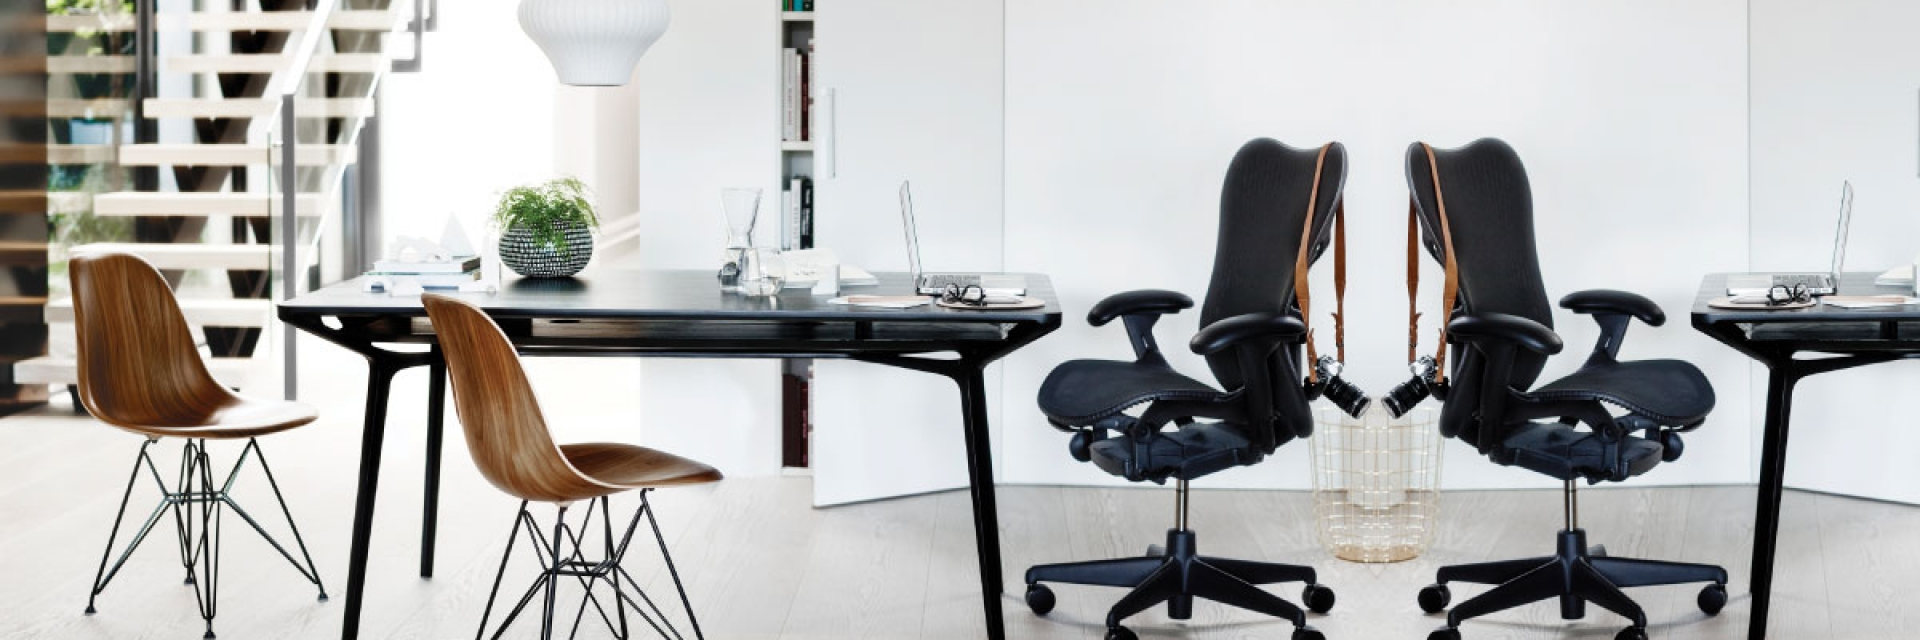 Herman Miller DSWR chairs, mirra 2 chair, Herman Miller dining setting, Herman miller eames dining chairs, Eames DSWR